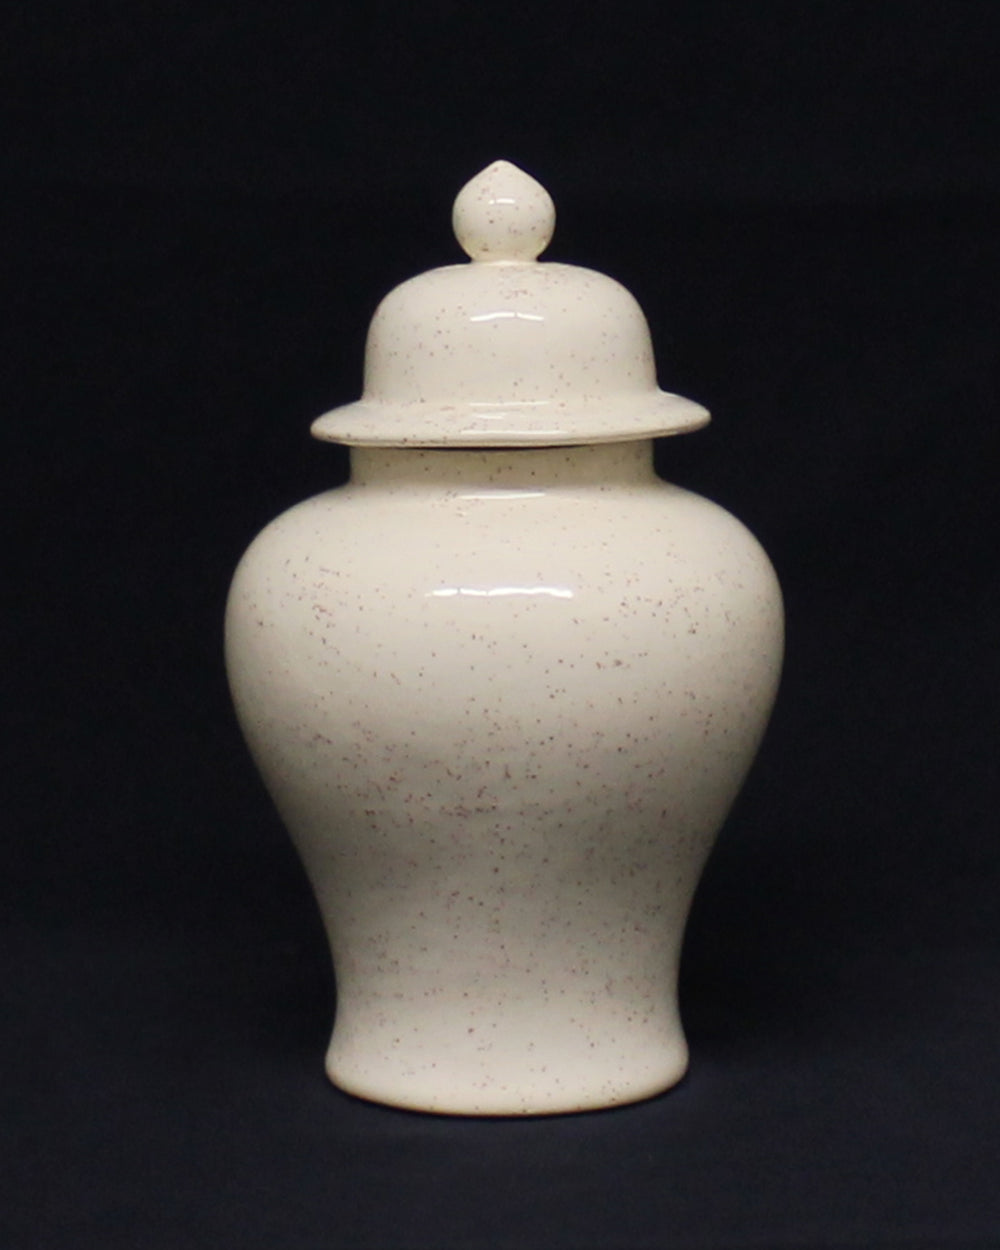 Hancrafted Ceramic Urn - Speckled - Small